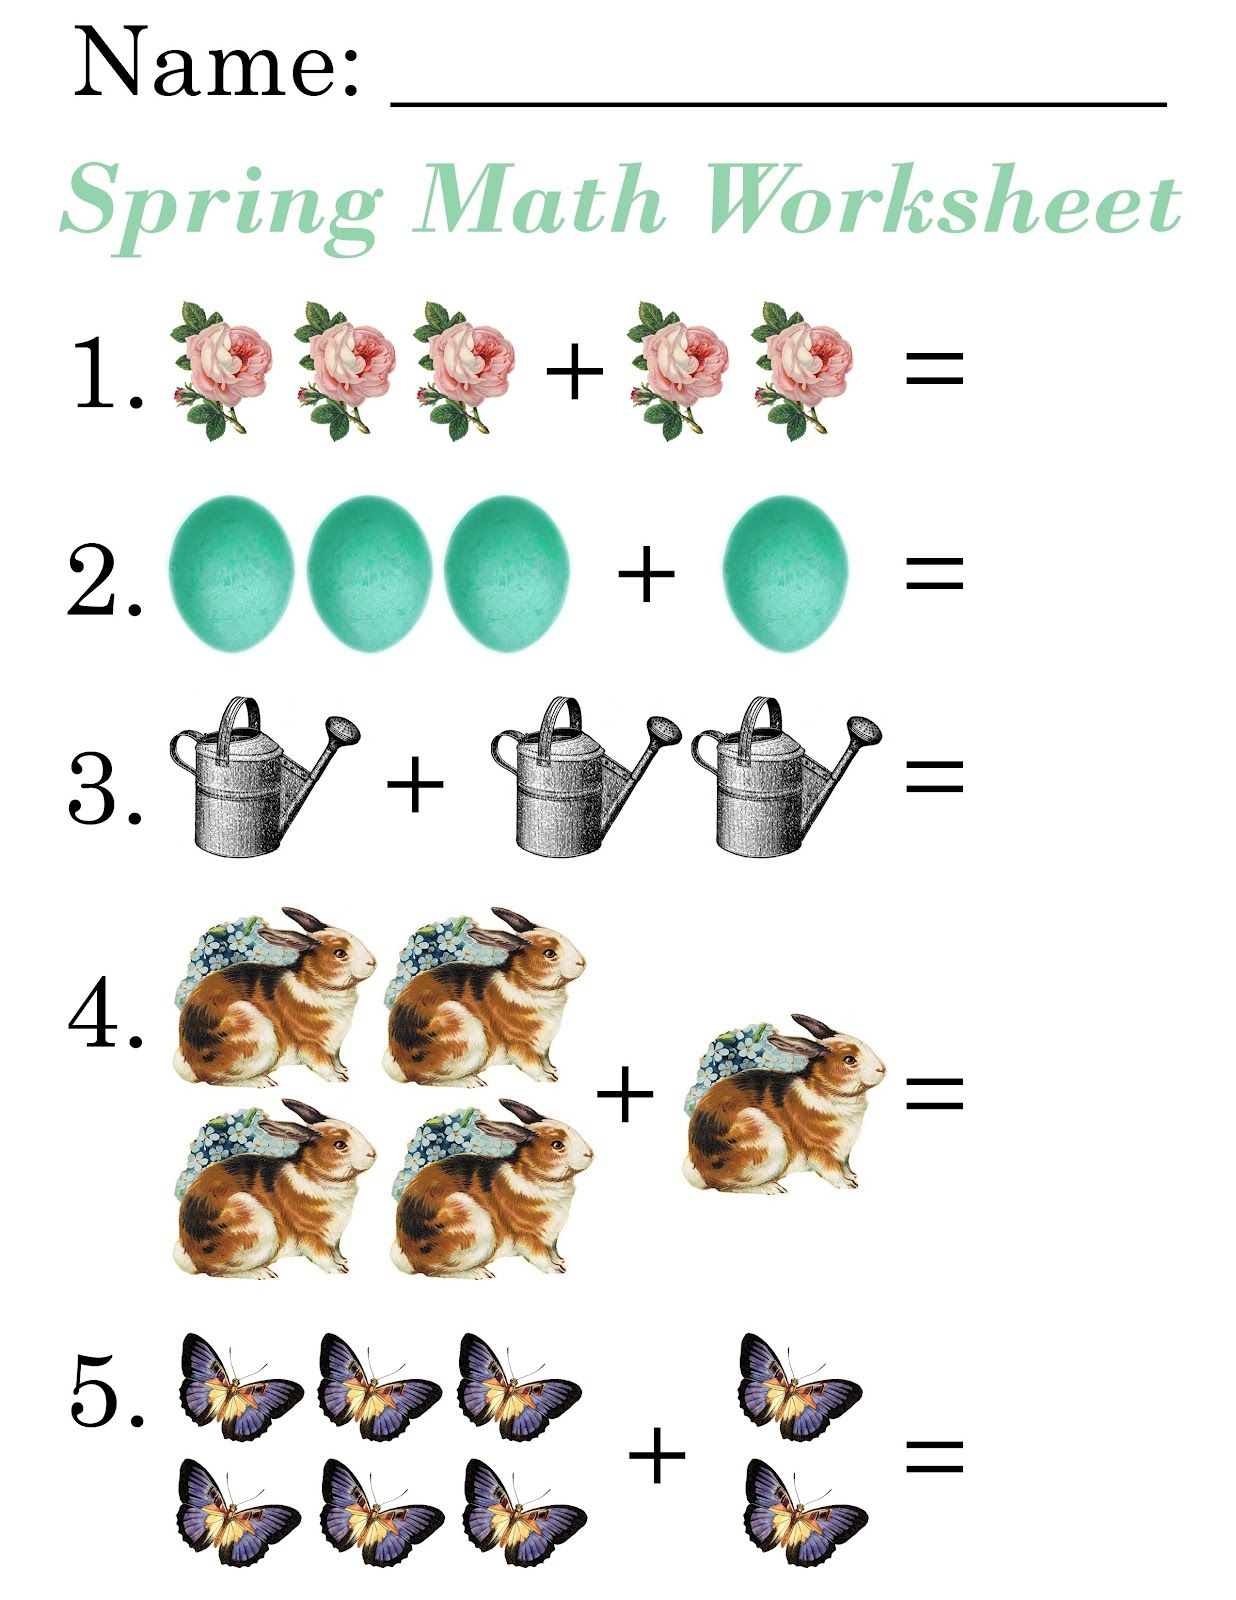 Lilac Lavender Kids Spring Math Worksheets – Simple Math Worksheets